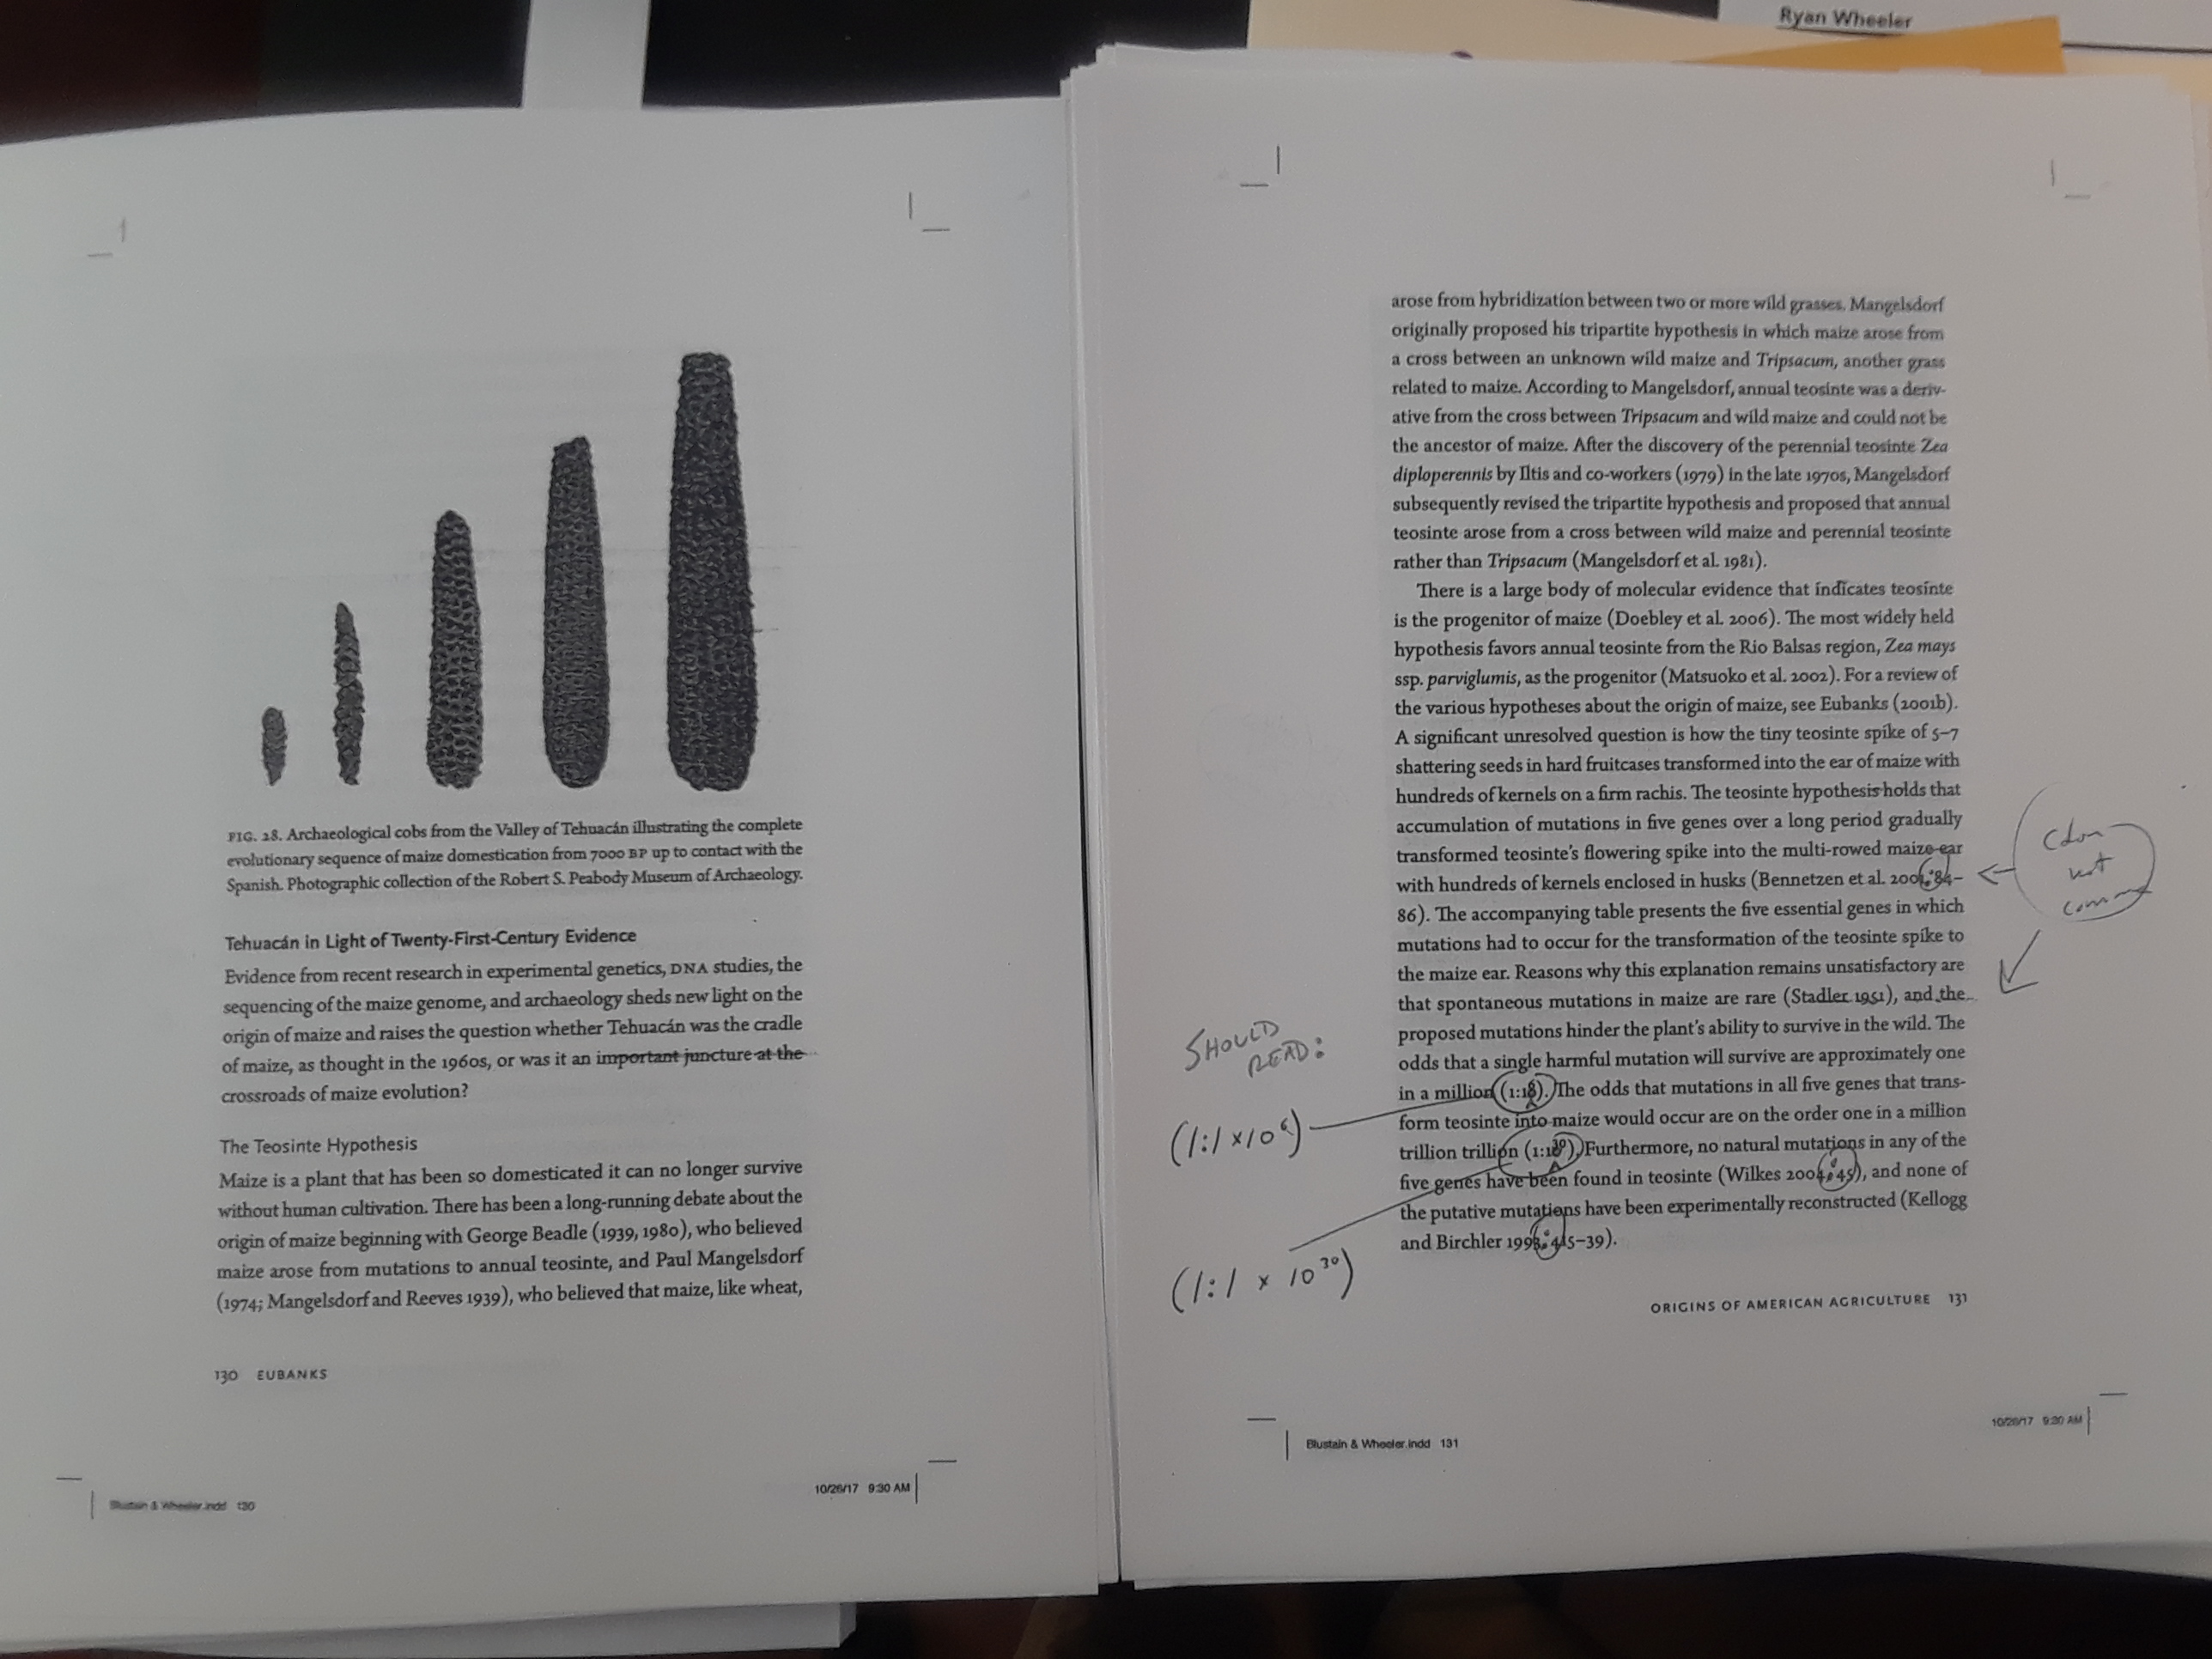 Image of galley proofs showing mark up.